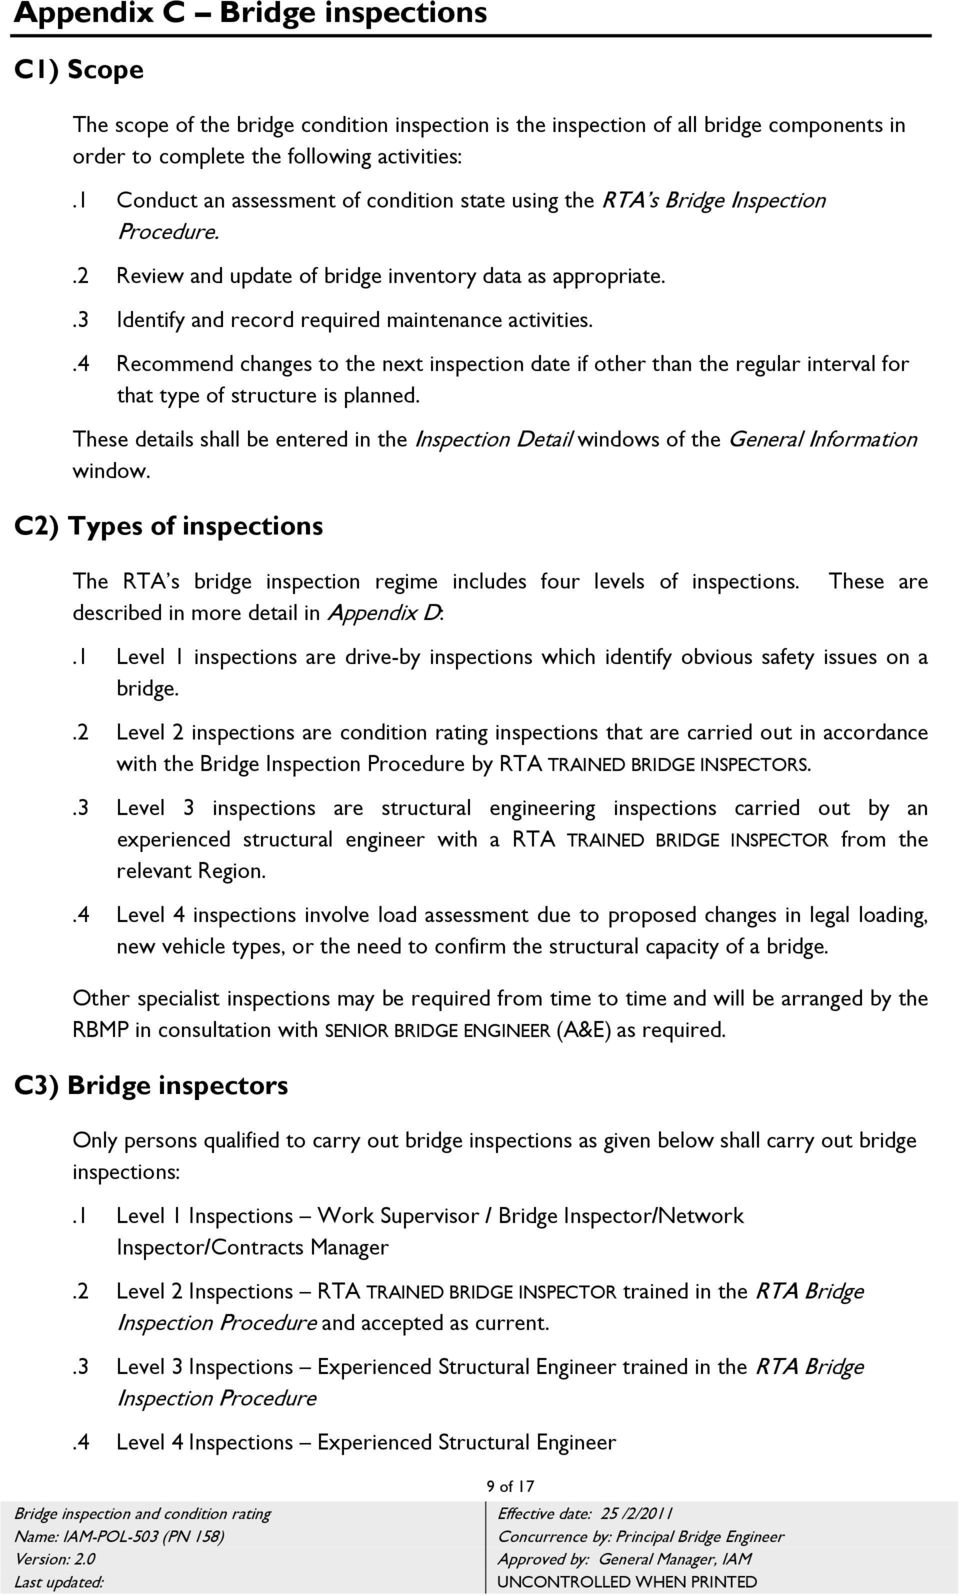 Bridge inventory, inspection and condition rating - Policy ...